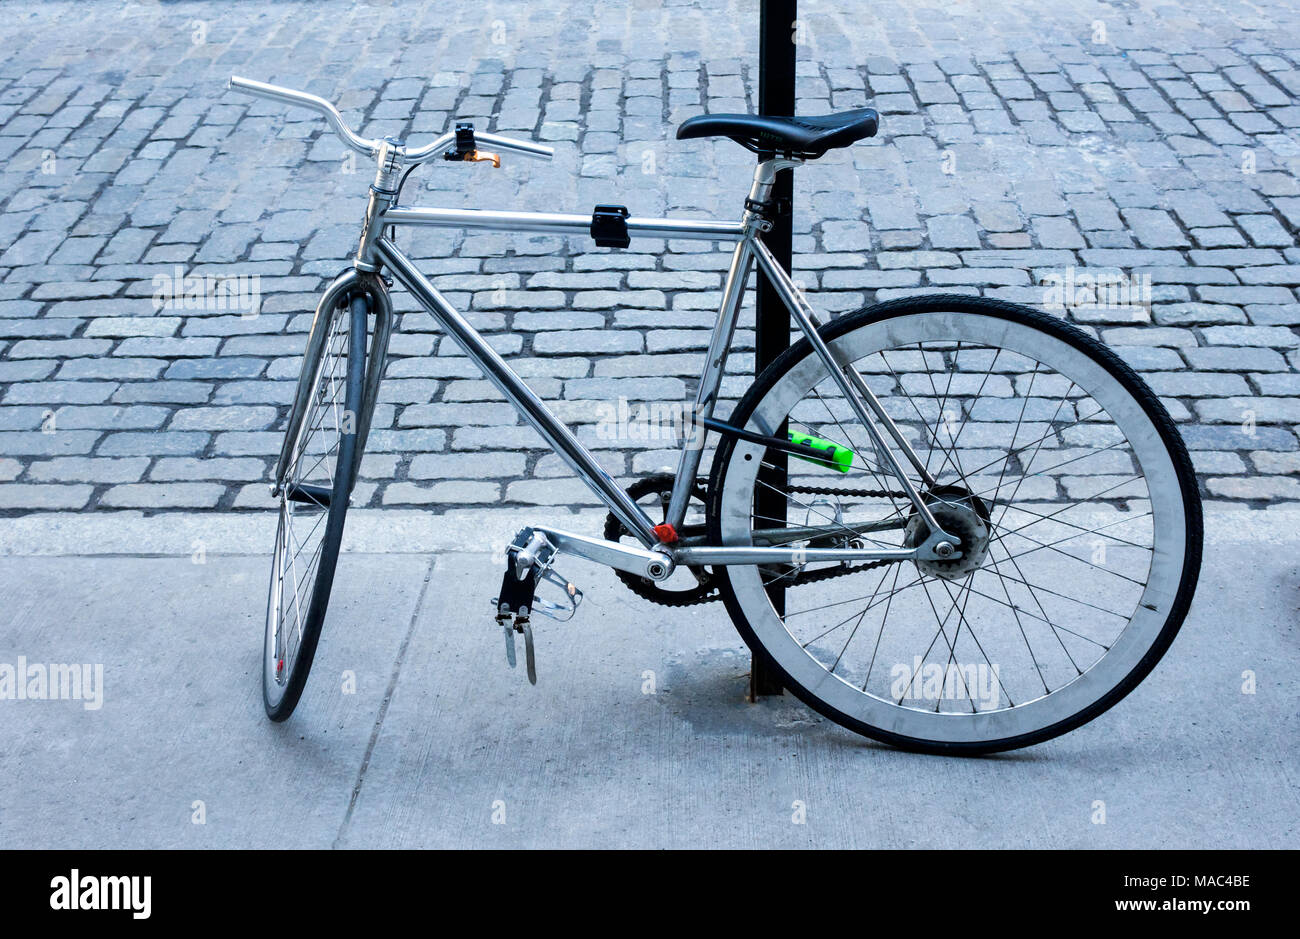 Man's bicycle secured to a post on a cobblestone street in New York City - Stock Image